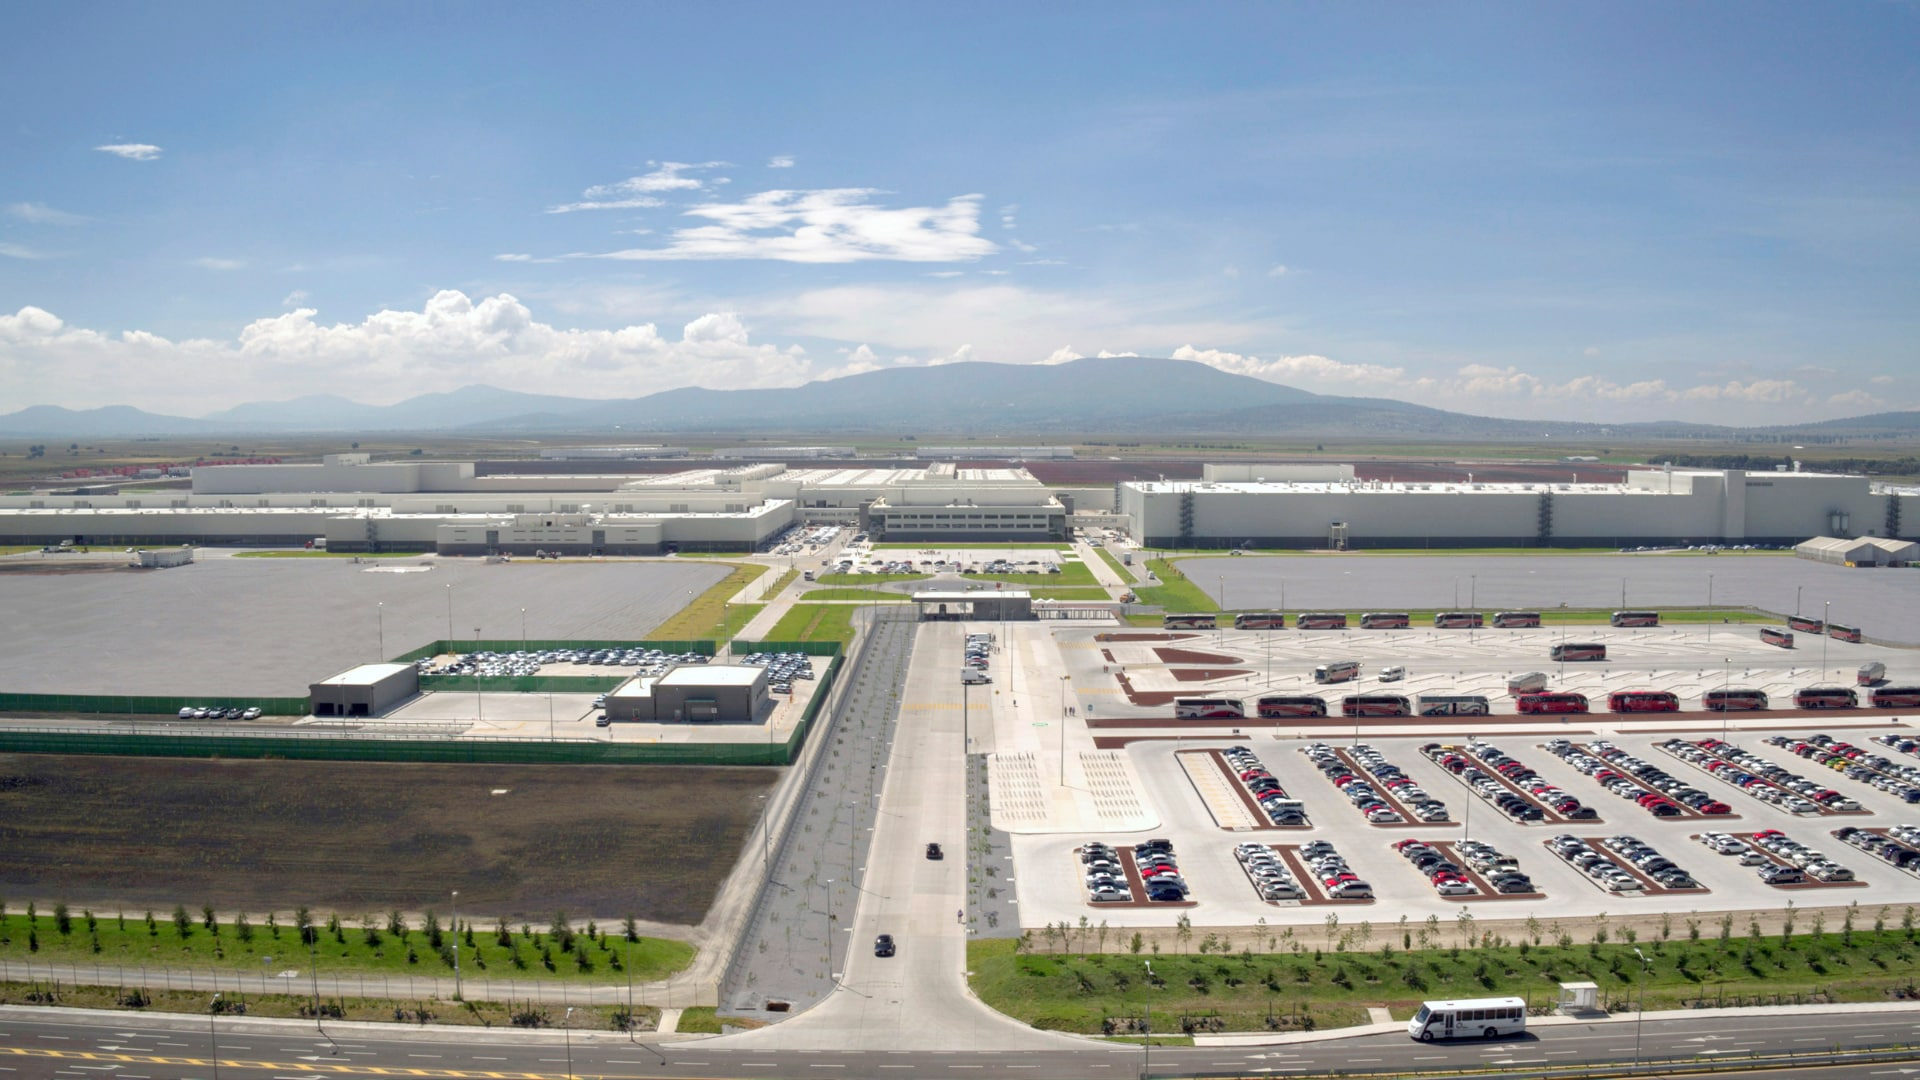 Audi site in San José Chiapa: In the first quarter of 2017, the Mexican Audi plant succeeded in recycling more than 90 percent of its waste, including metals – in other words, almost 30,000 metric tons. That is equivalent to more than six fully loaded freight trains. Another green project involved planting 100,000 trees in the vicinity of the plant and digging 25,000 pits. These have several functions: They provide the nearby trees with water and, each year, collect up to 375,000 cubic meters of rainwater, which when filtered contributes to naturally remediating the groundwater. In addition, the pits reduce erosion.